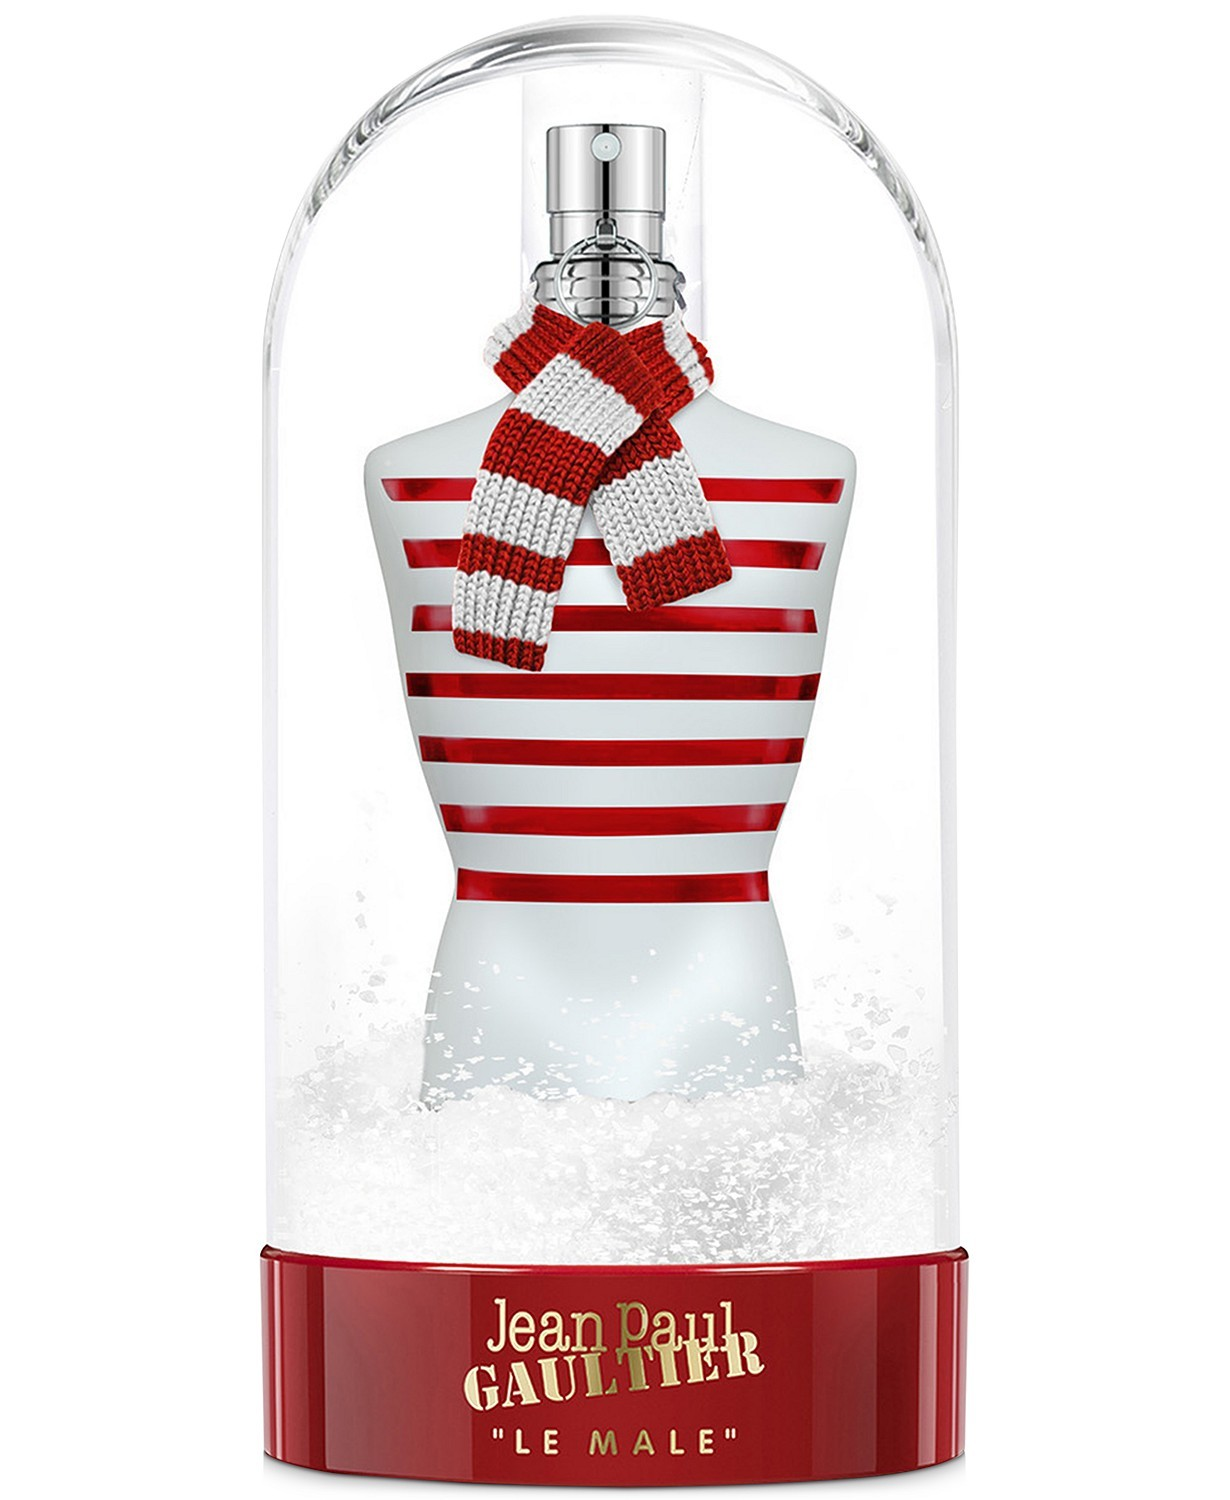 Изображение парфюма Jean Paul Gaultier Le Male Snow Globe Edition